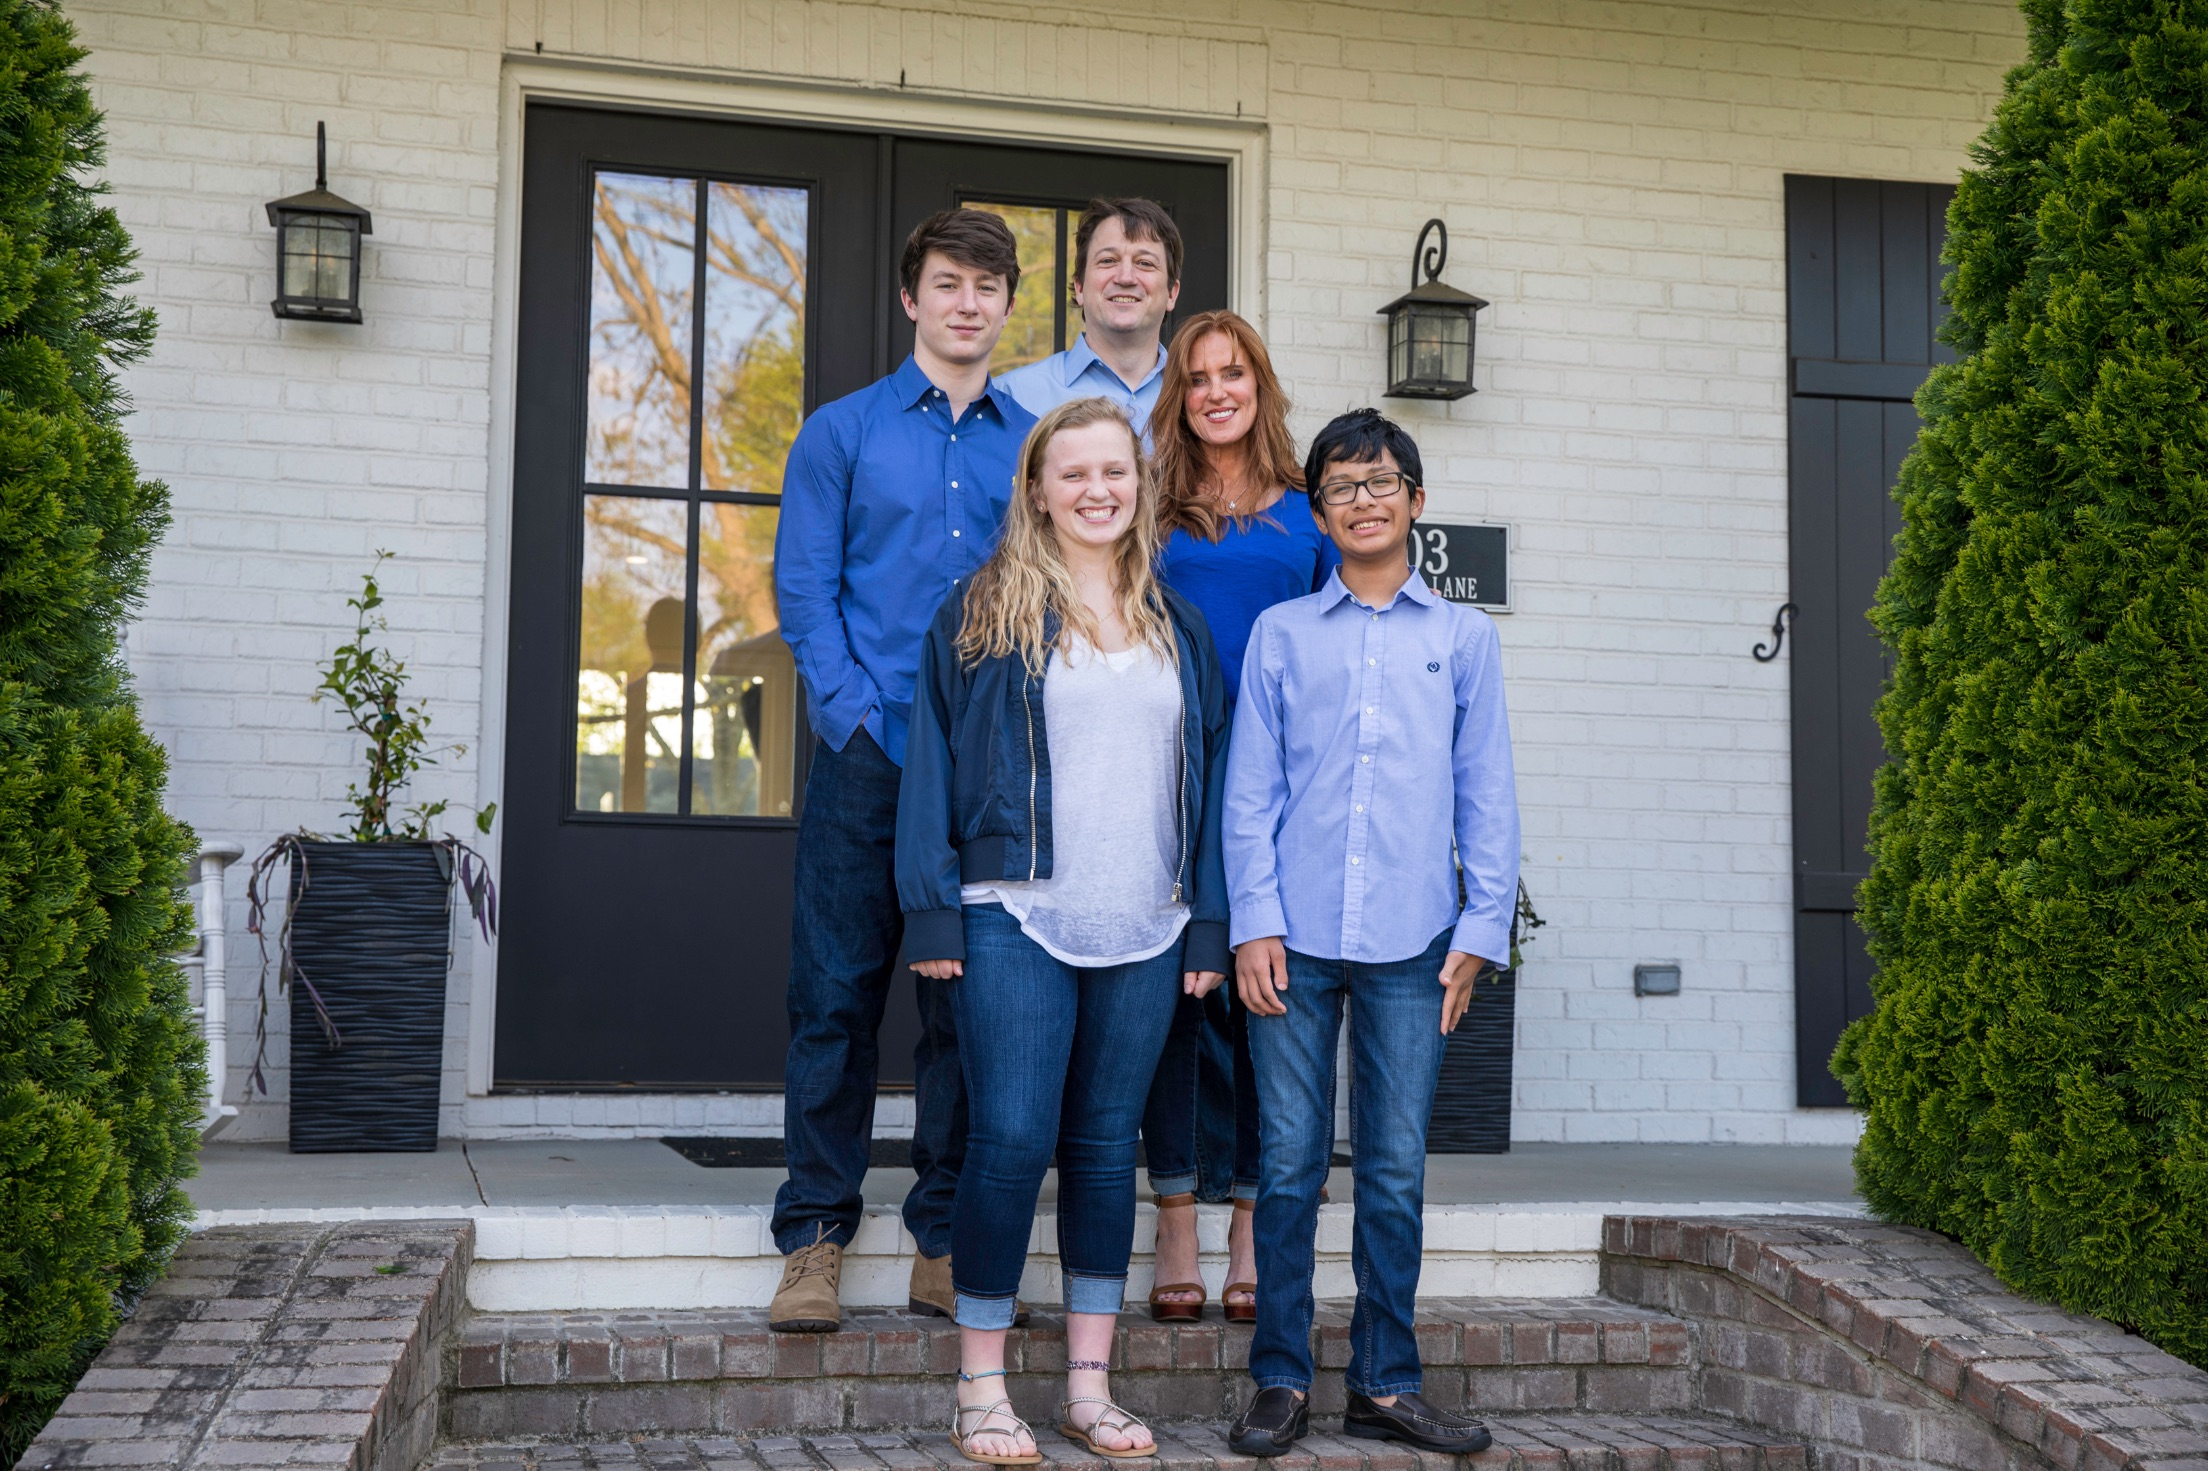 Traci Semptimphelter, Real Estate Advisor, and family